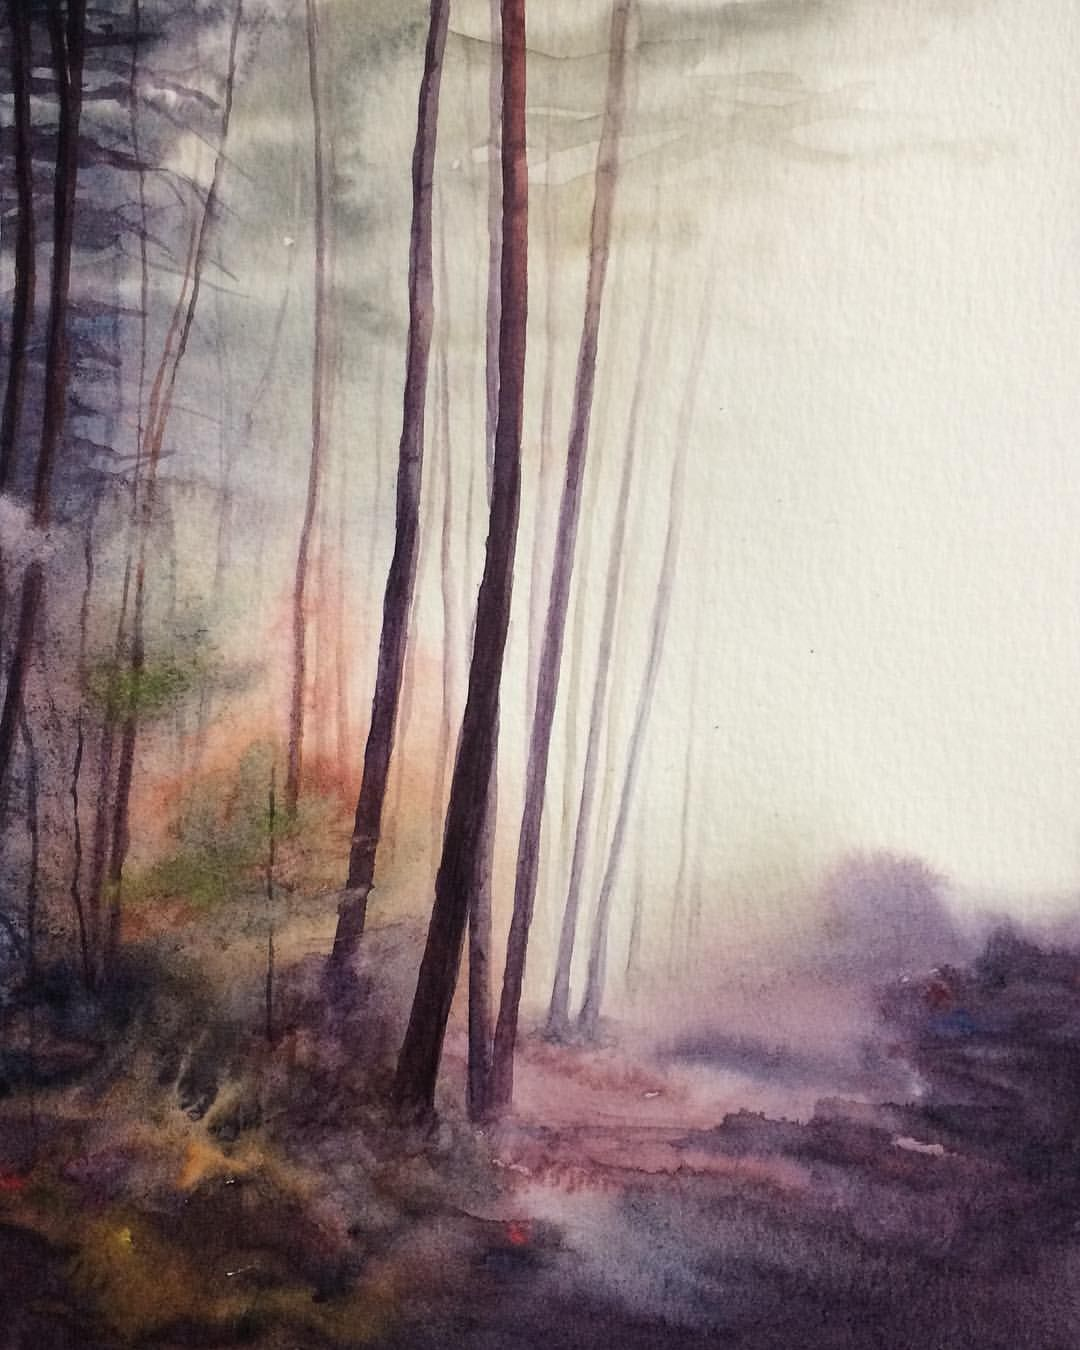 forest painting forest watercolor watercolor landscape watercolor forest misty f forest painting watercolor paintings nature watercolor landscape paintings watercolor landscape watercolor forest